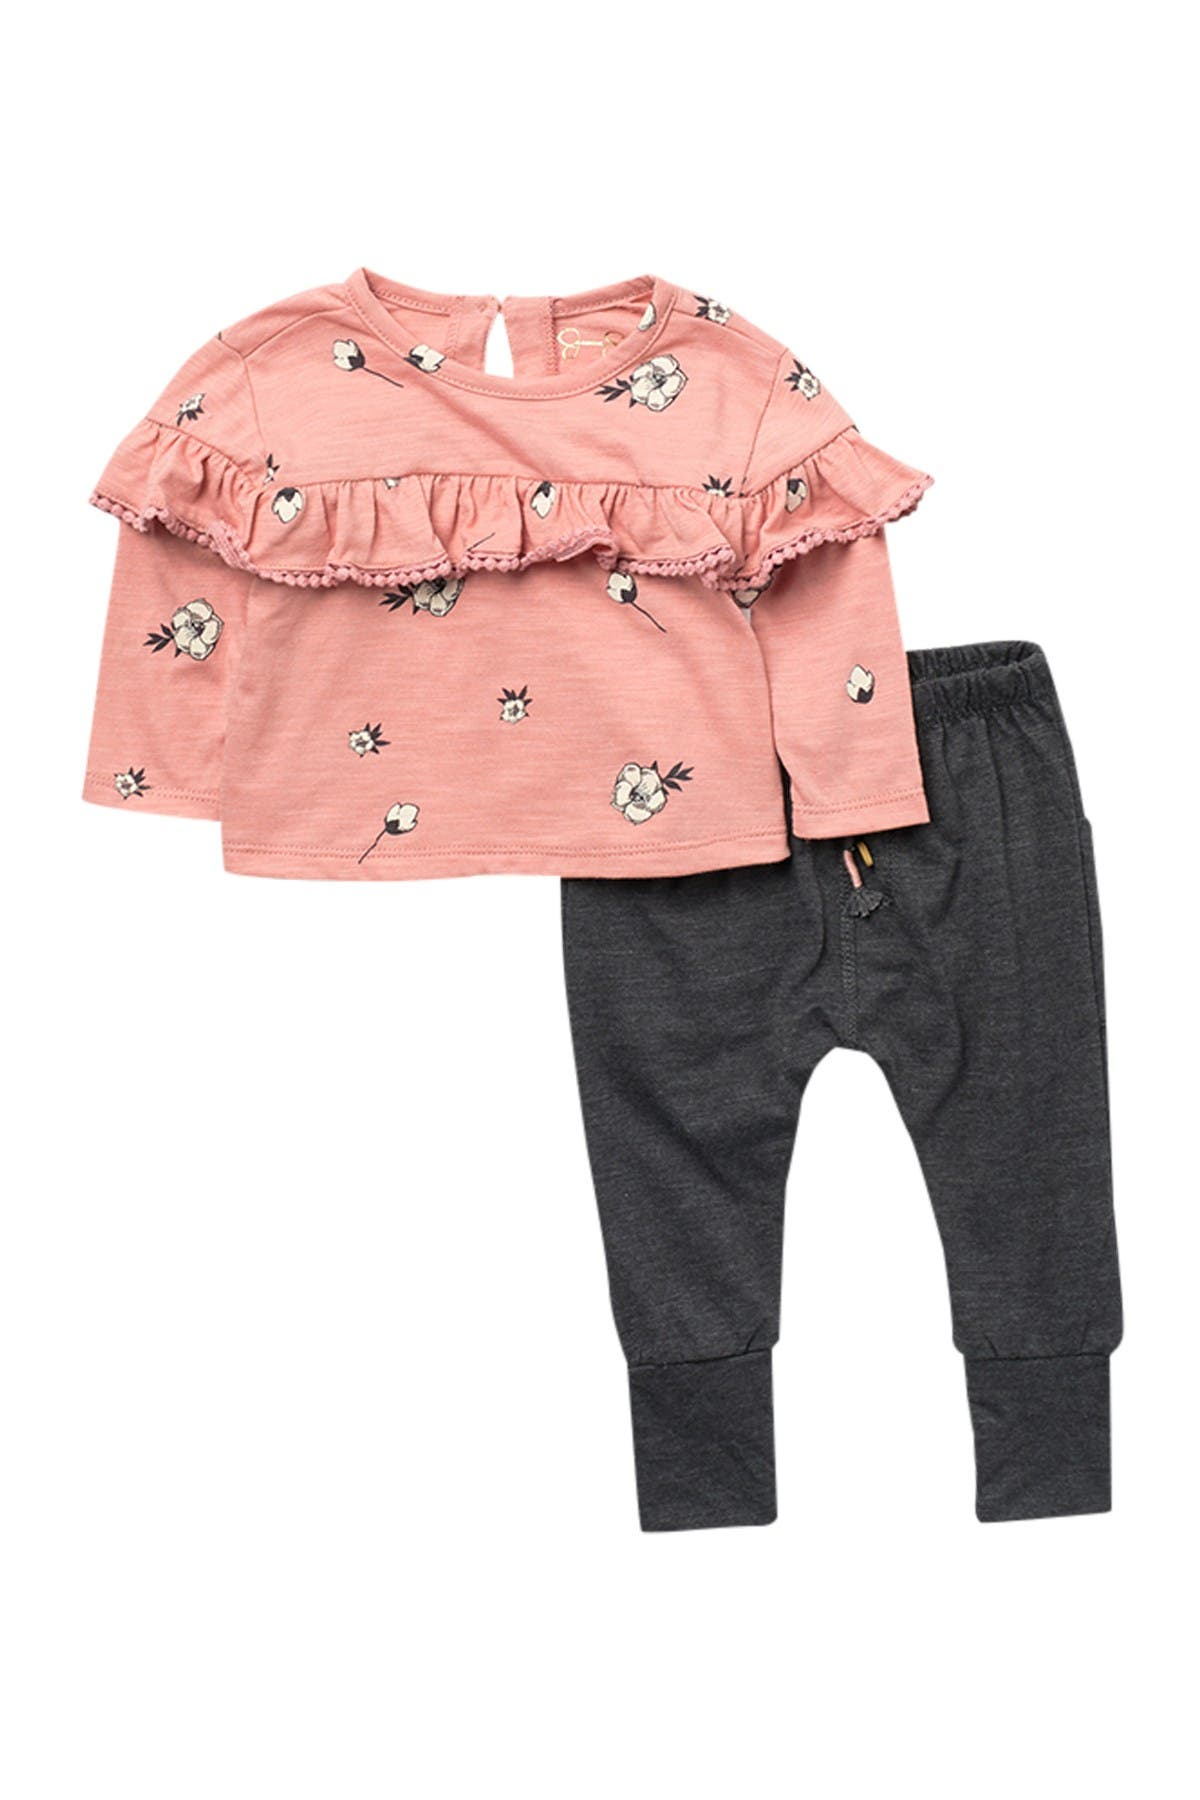 Image of Jessica Simpson Ruffled Long Sleeve Top & Joggers Set